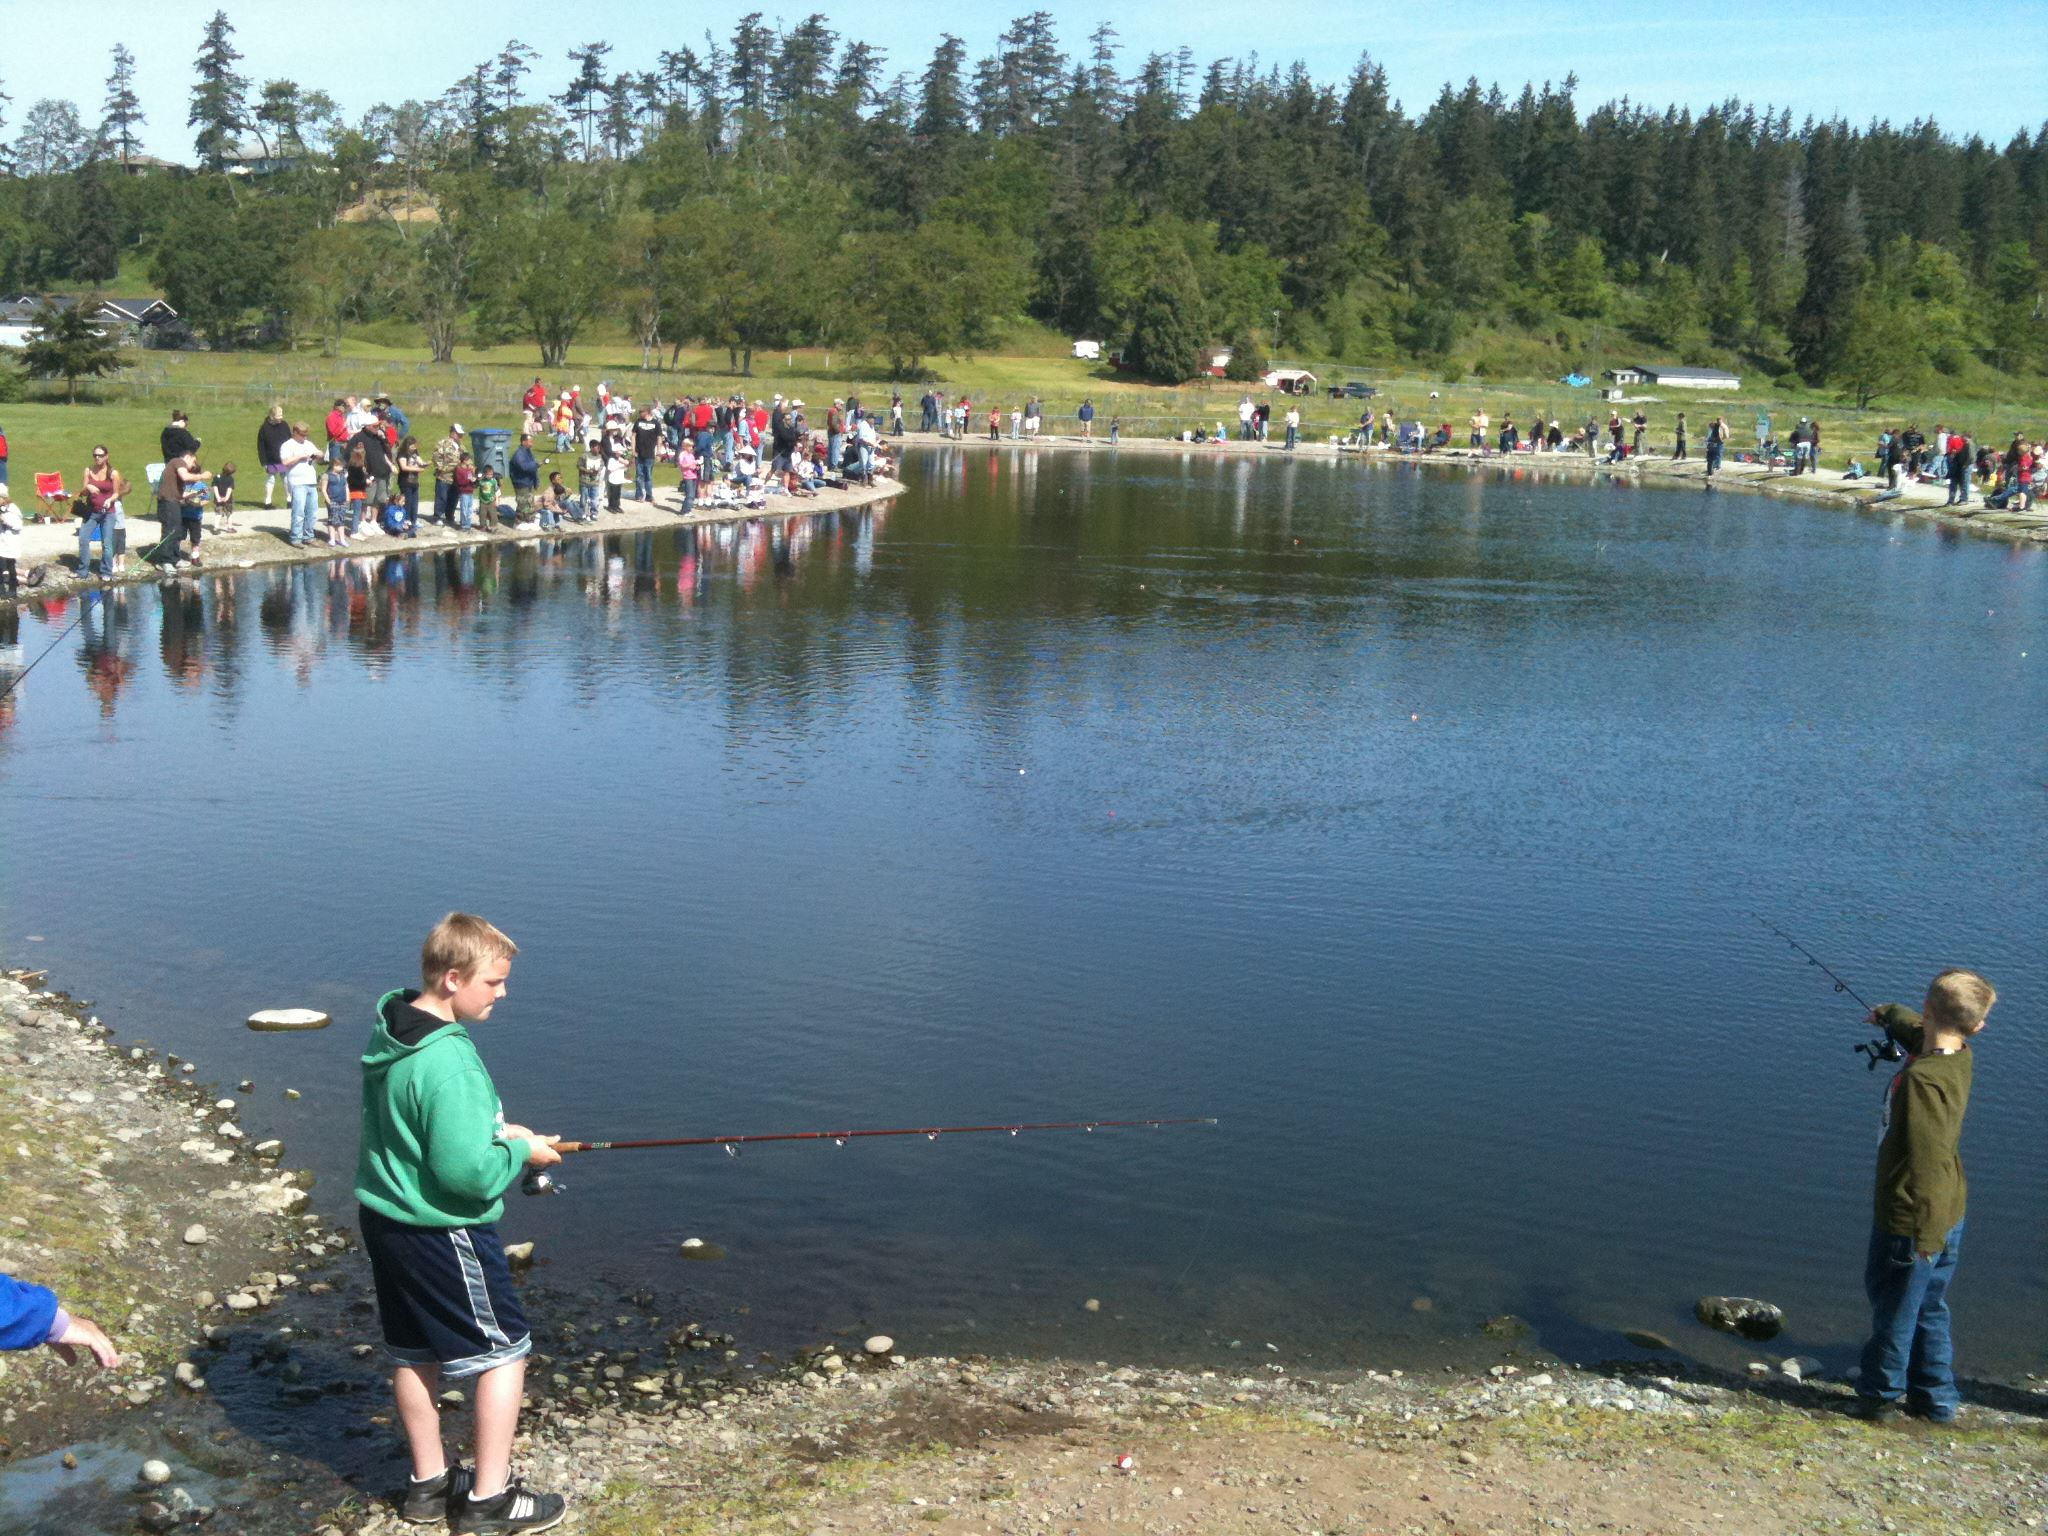 Fishing at the Reuse Pond